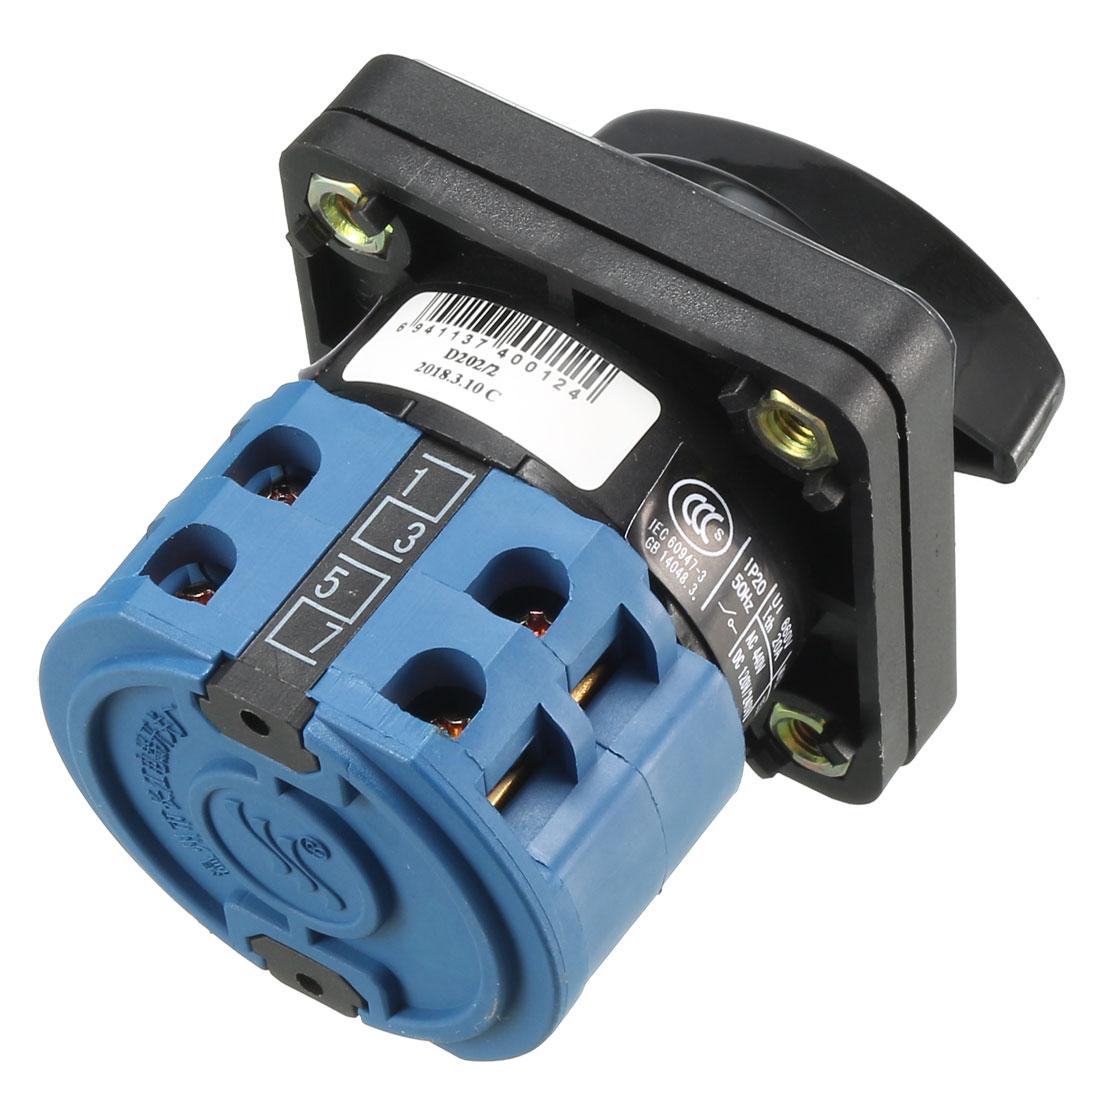 Cam Changeover Switch 3 Positions Rotary Selector Switch 12 Terminals LW26-20 - image 2 of 4